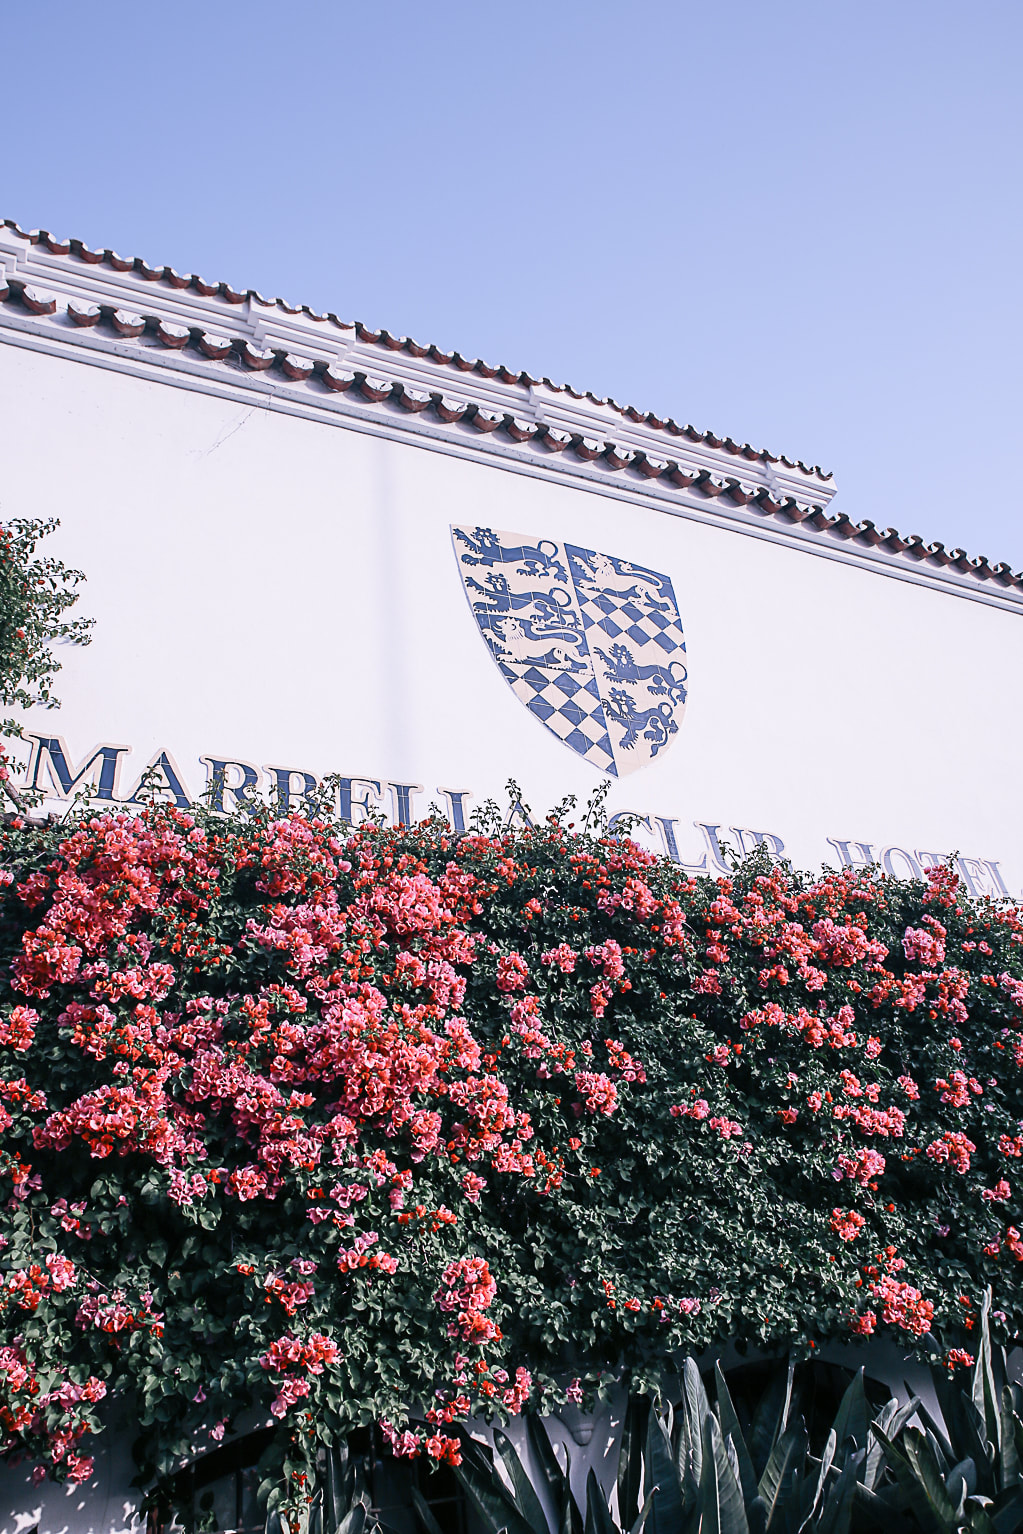 San Juan celebrations at the Marbella club hotel, Marbella by The Belle Blog